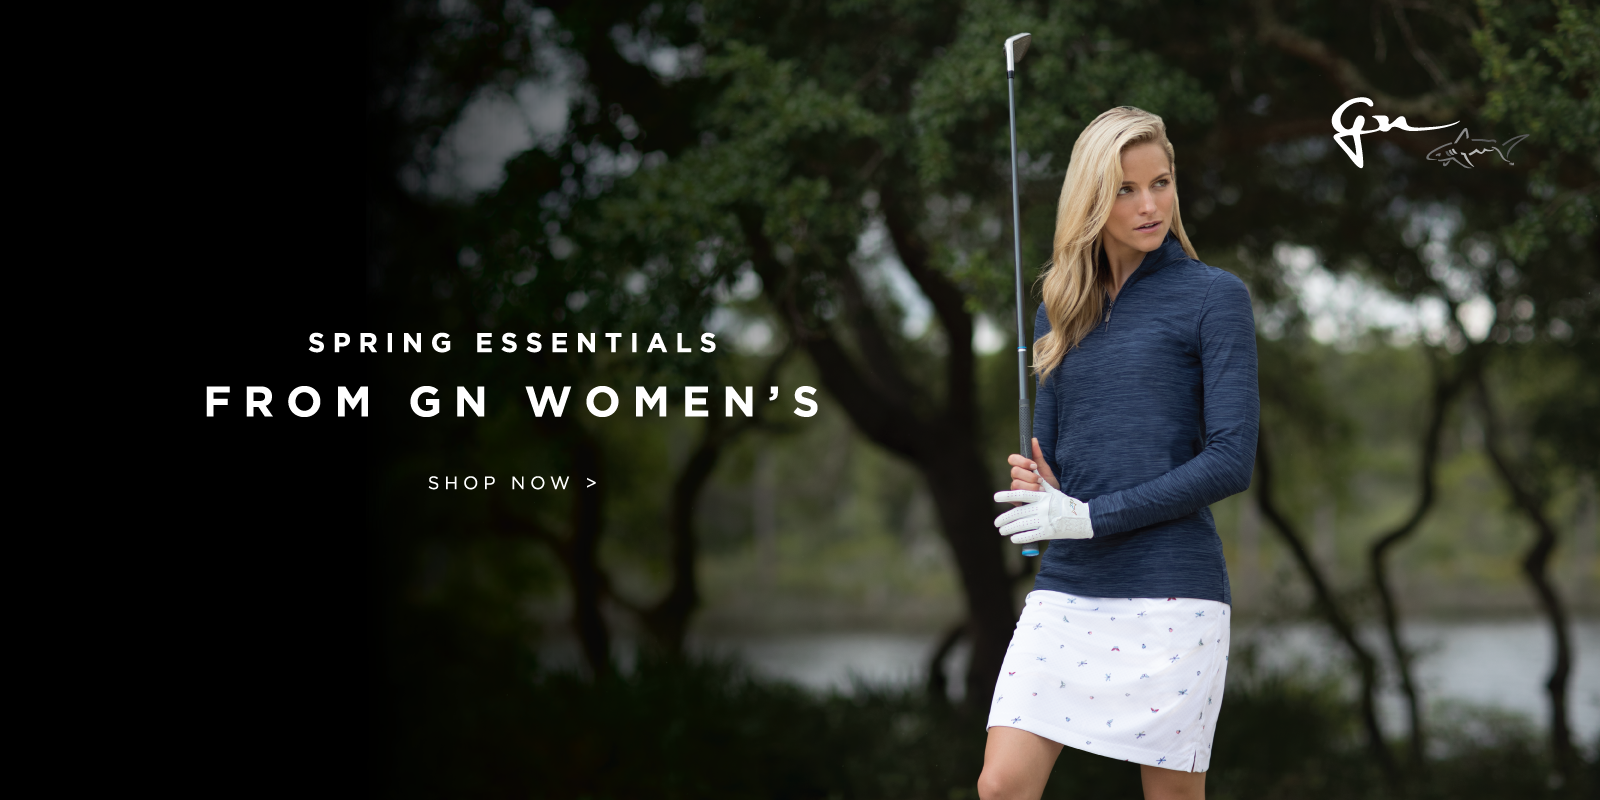 Spring Essentials From GN Women's Shop Now